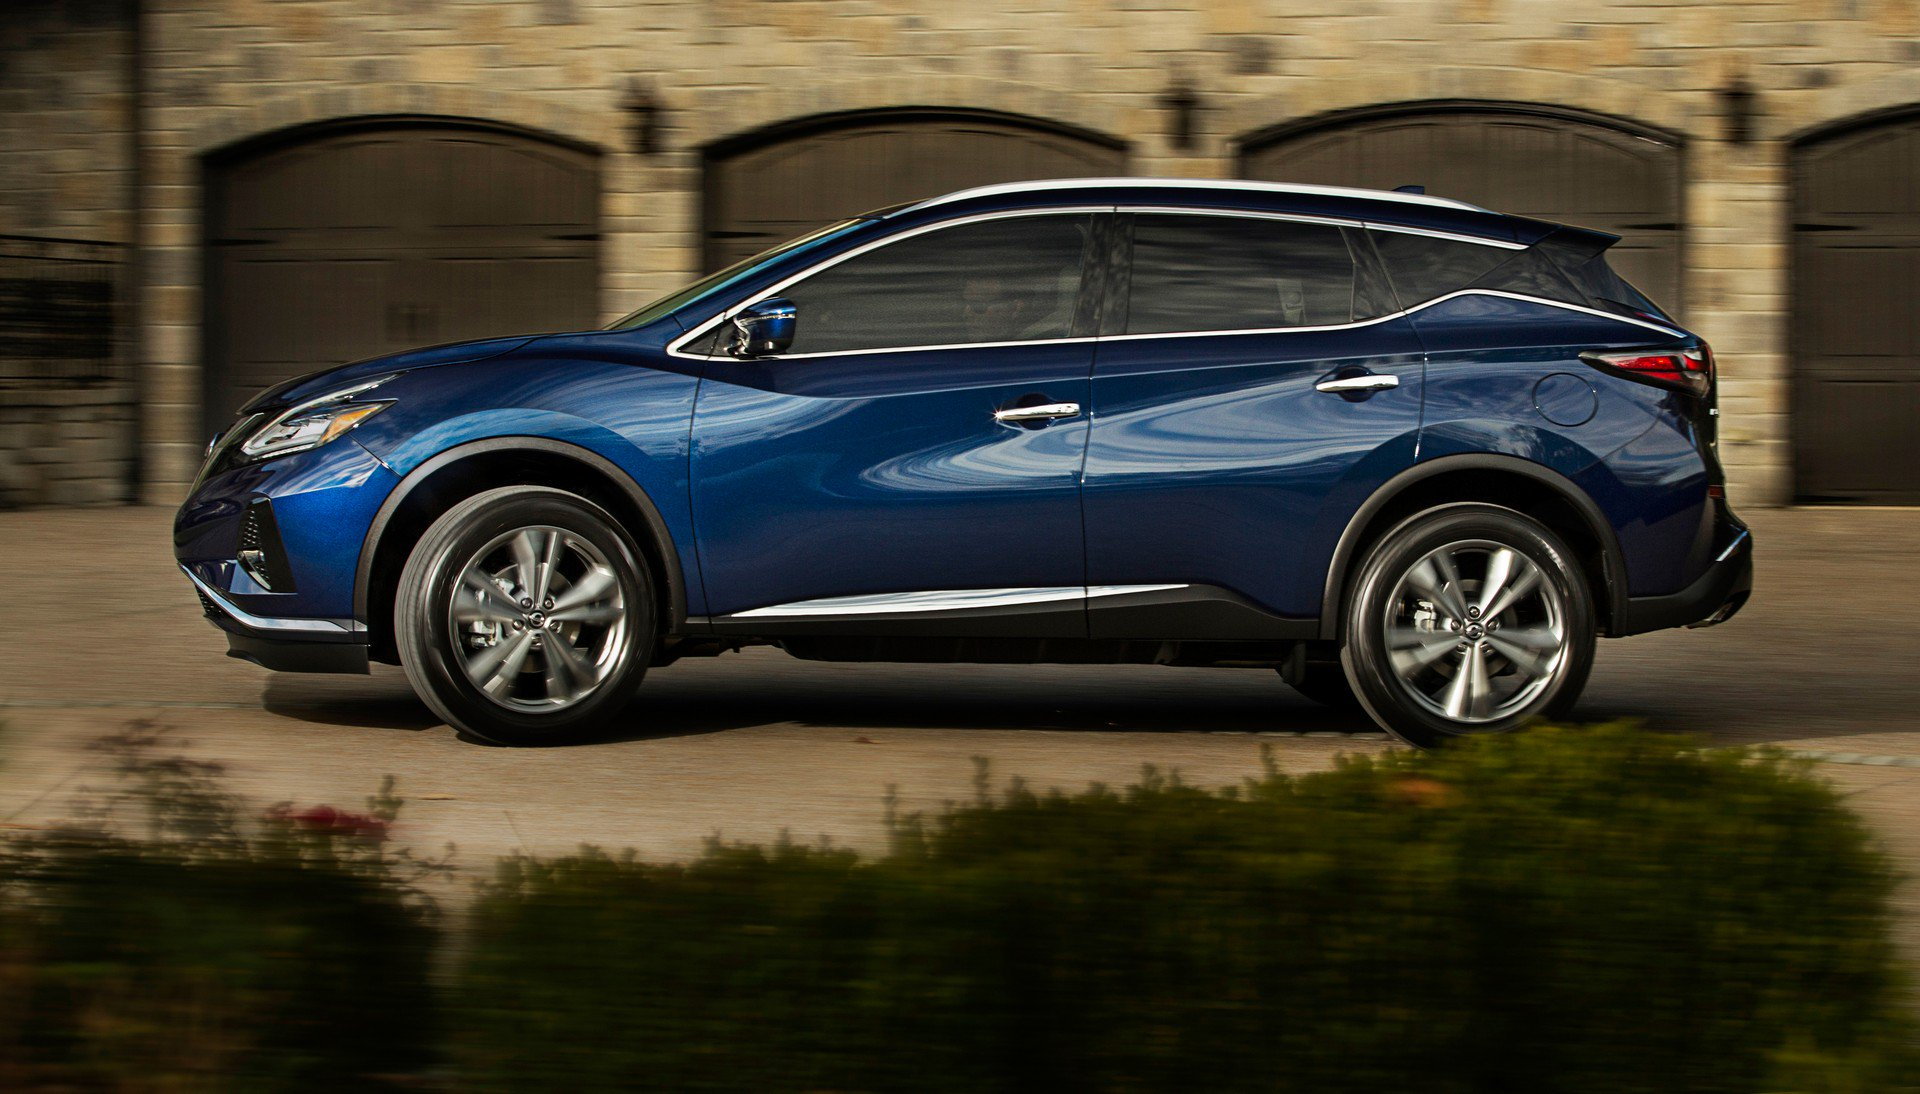 c4a307a2-2019-nissan-murano-8